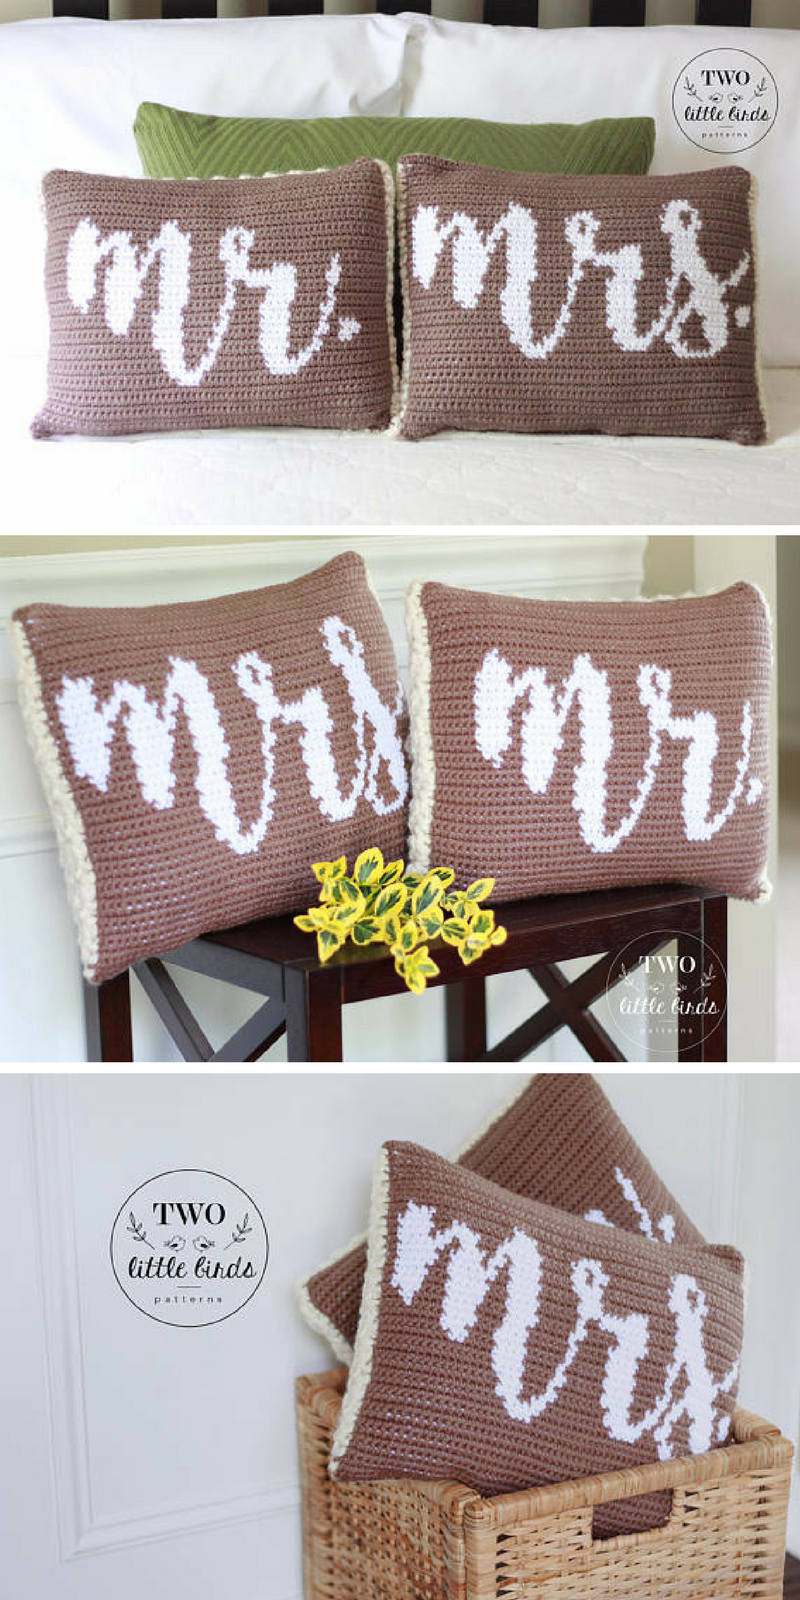 Mr and Mrs Pillows Makes a Great Wedding Gift